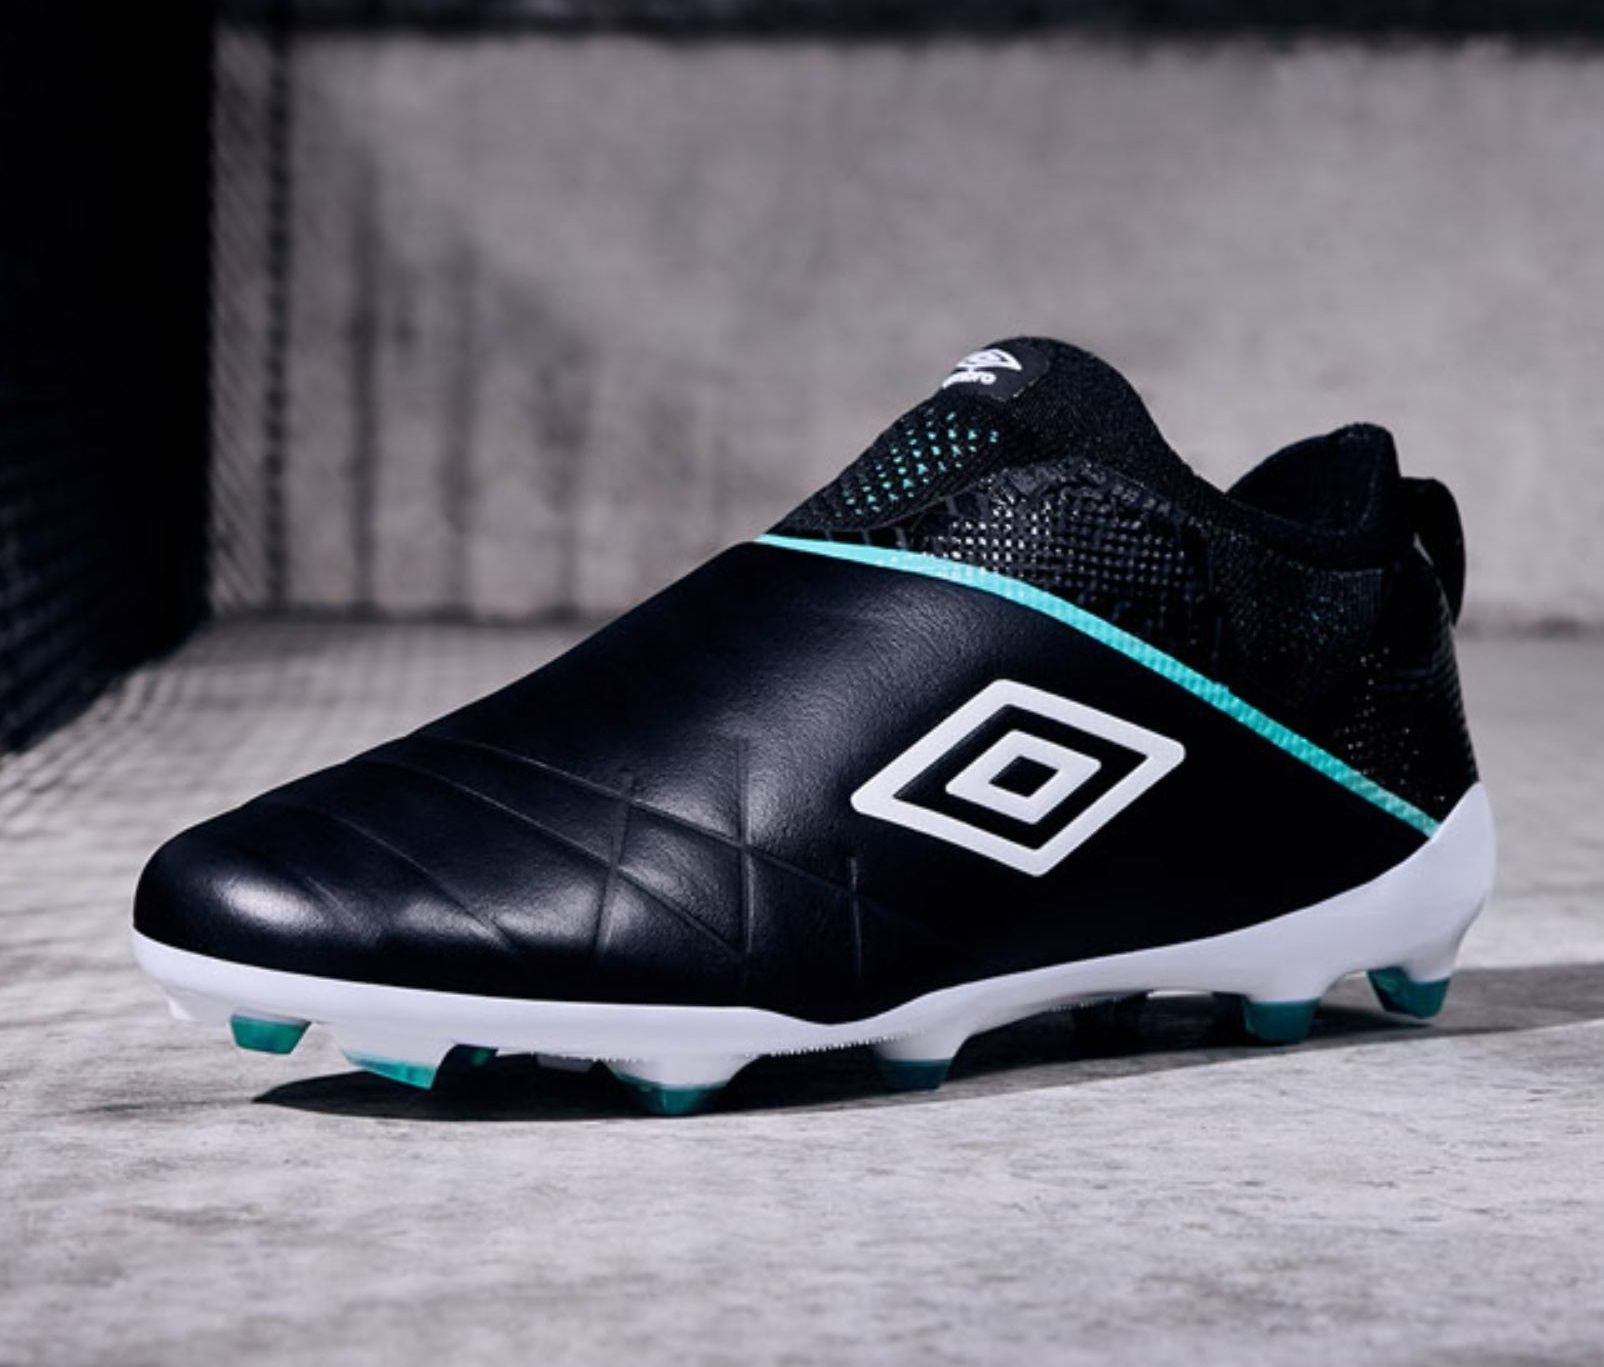 Limited Edition Umbro Medusae 3 Elite Soccer Boots Football Boots Soccer Shoes